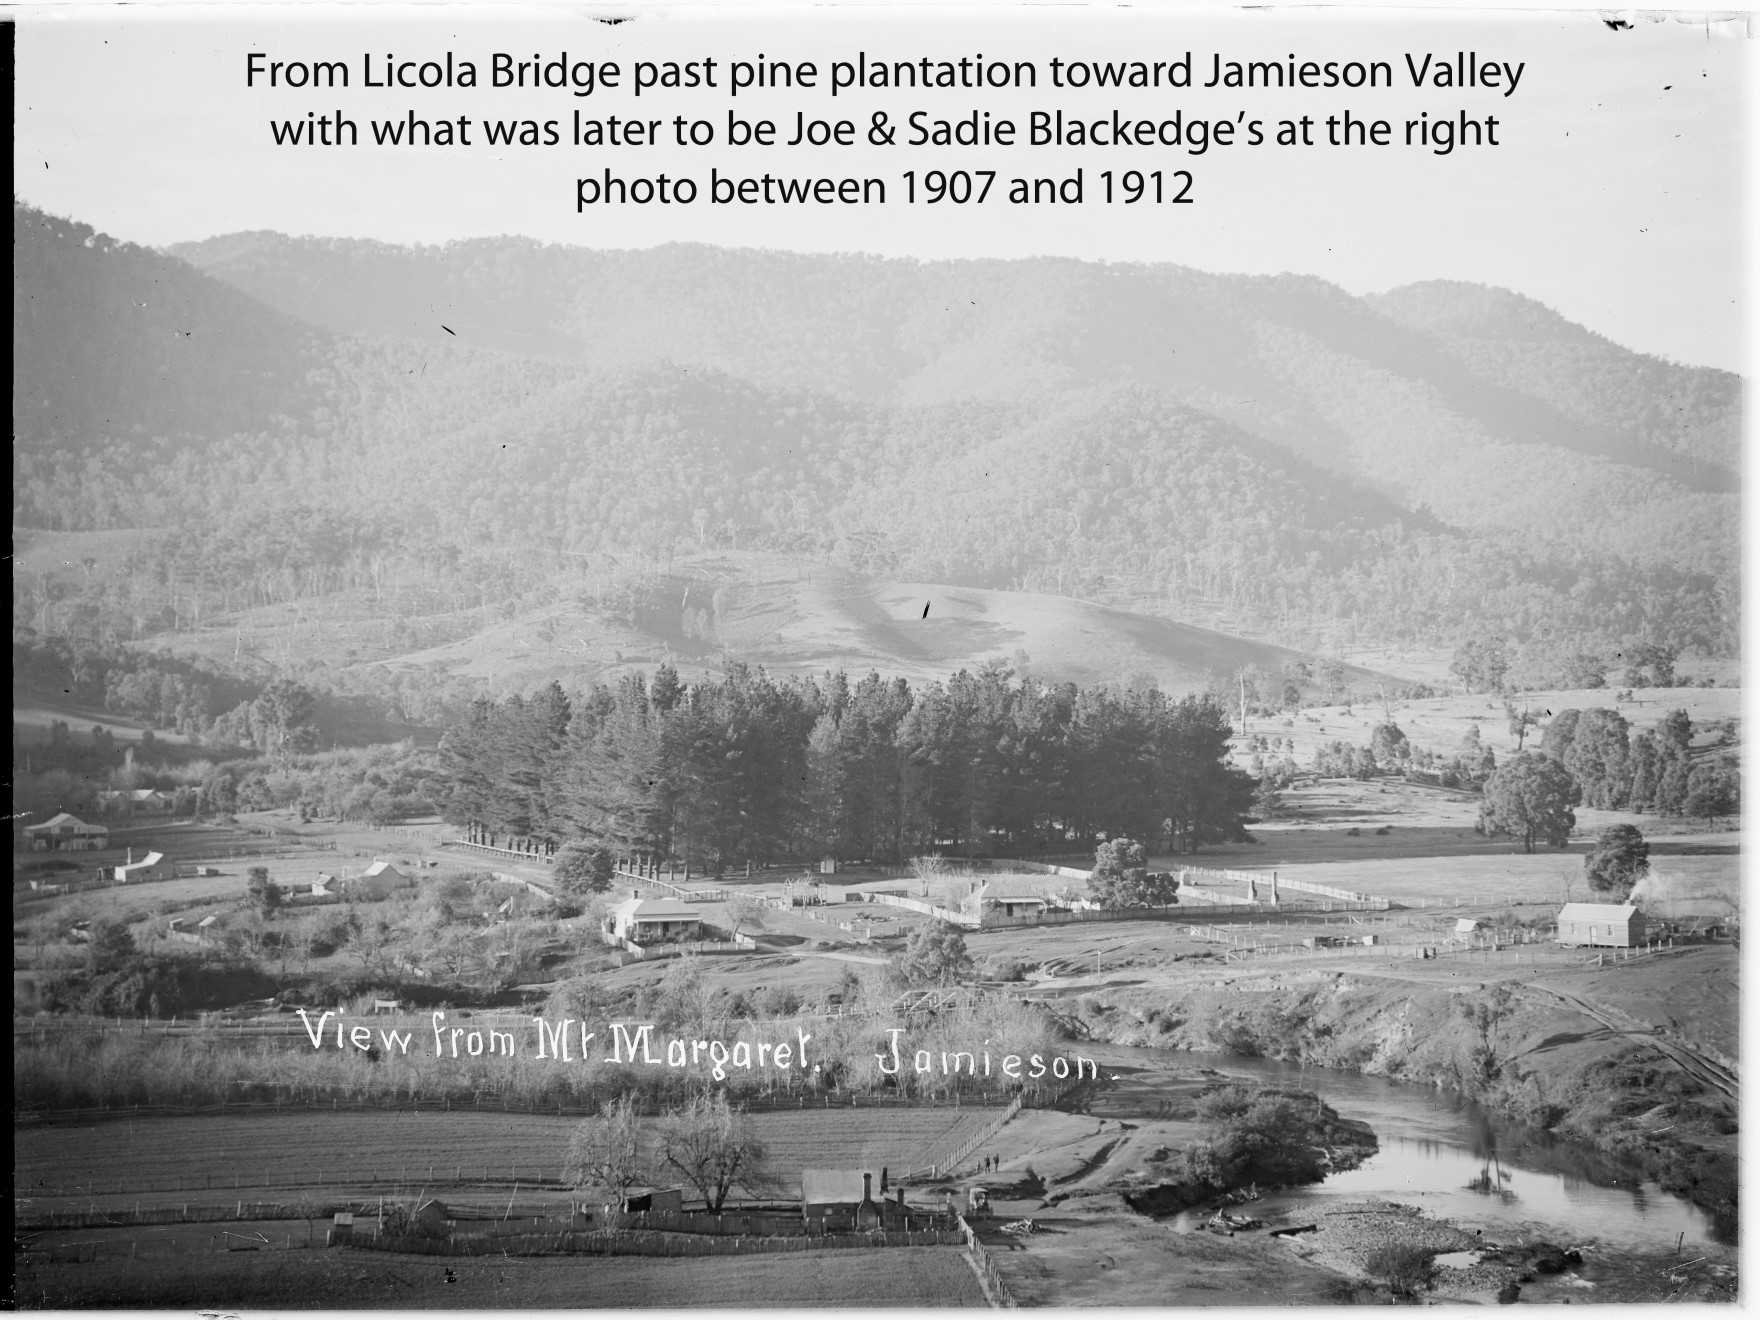 Jamieson East with Blackledges 1907-1912